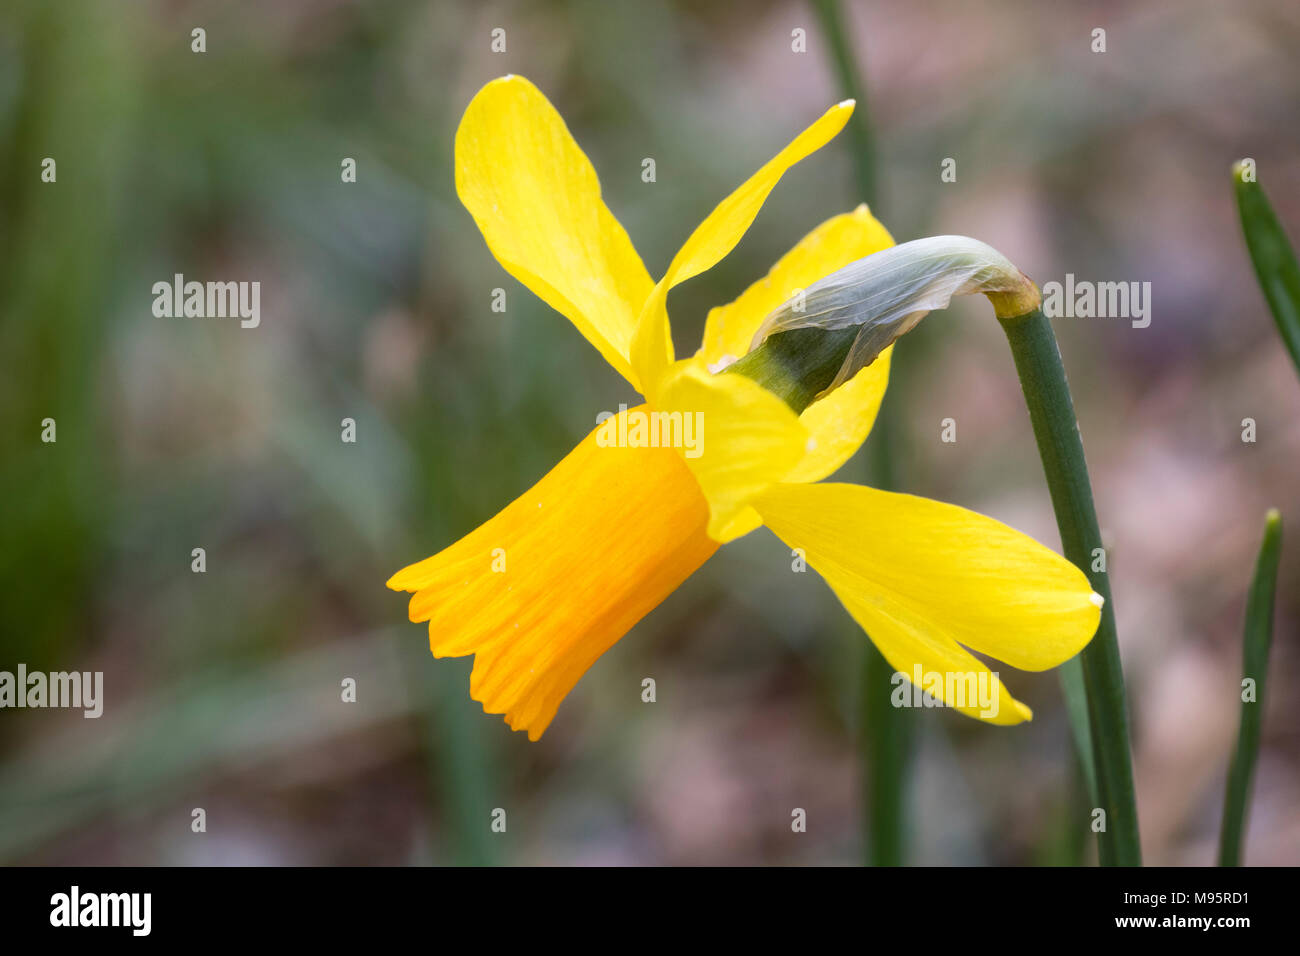 Ornage corolla and yellow petals of the single flowered cyclamineus group daffodil, Narcissus 'Jetfire' - Stock Image